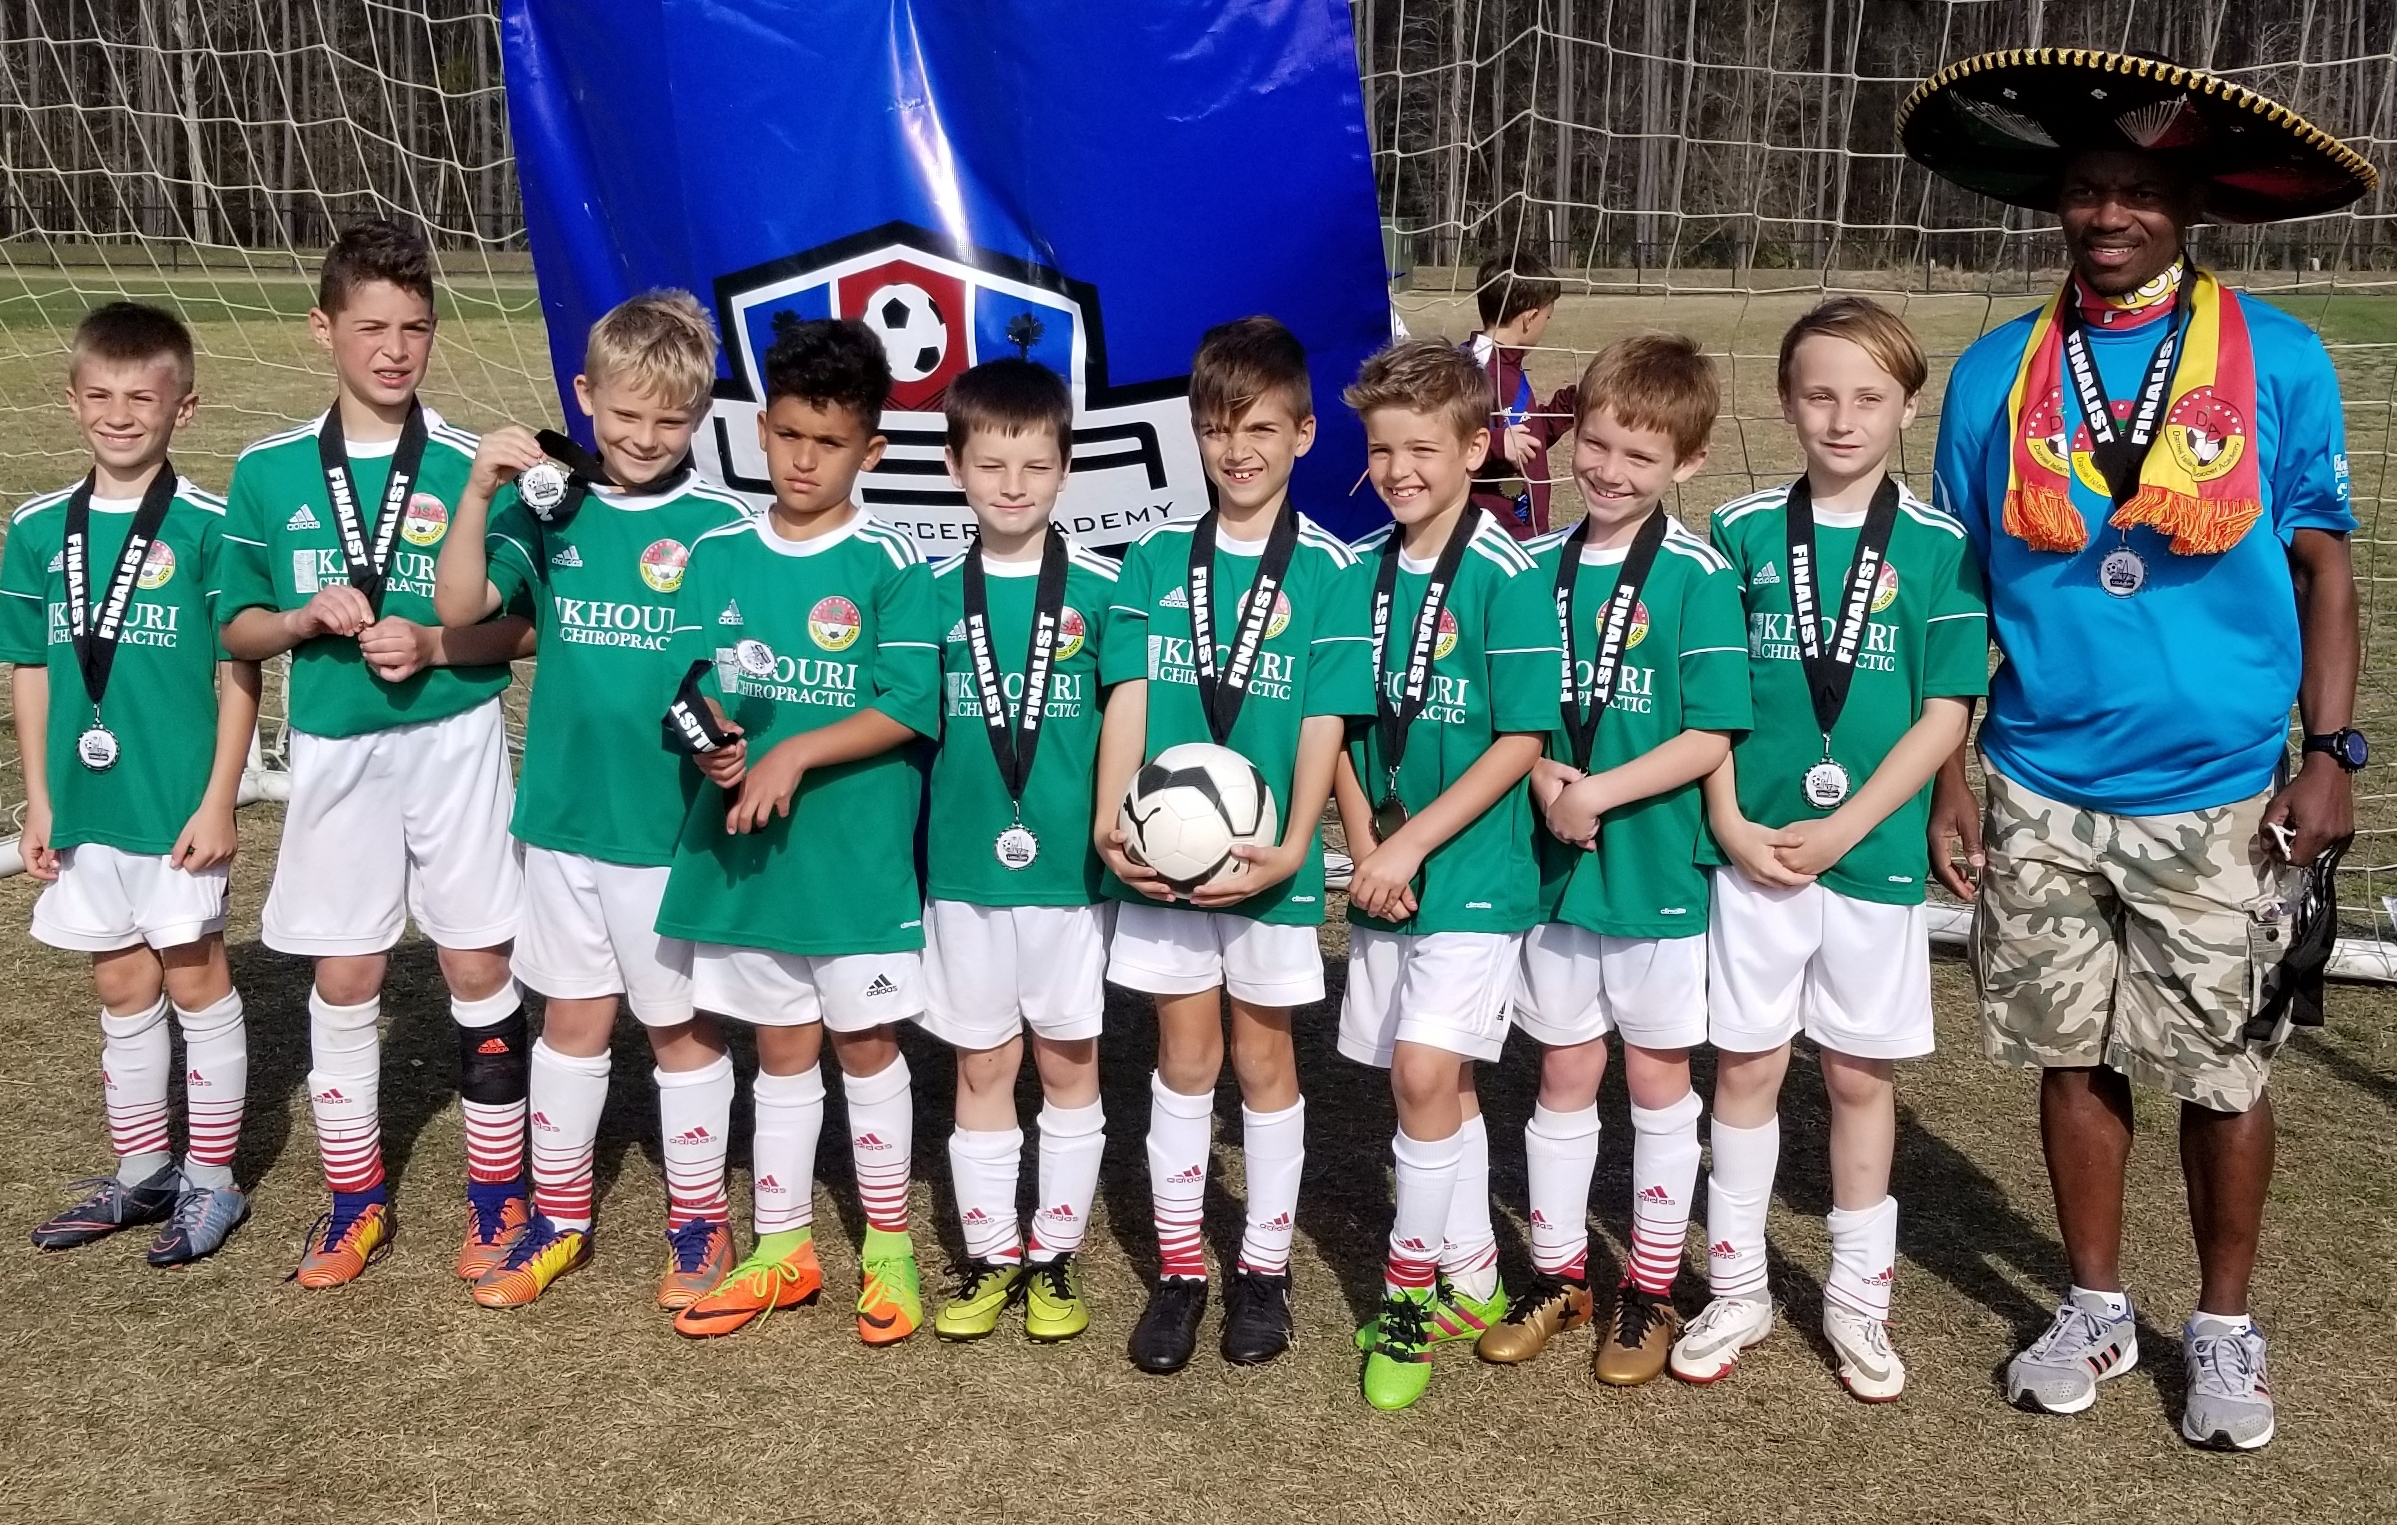 DISA's U10 Arsenal team was a finalist in the Mount Pleasant Spring Shootout March 17-18. Pictured are Lucas Rizzetto, Sam Pelsnik, Logan Leddy, Gunner Khouri, Thomas Terry, Nate White, Brady Evin, LJ LeVeen, Pierce Johnson and Coach Robert Nosakhare.